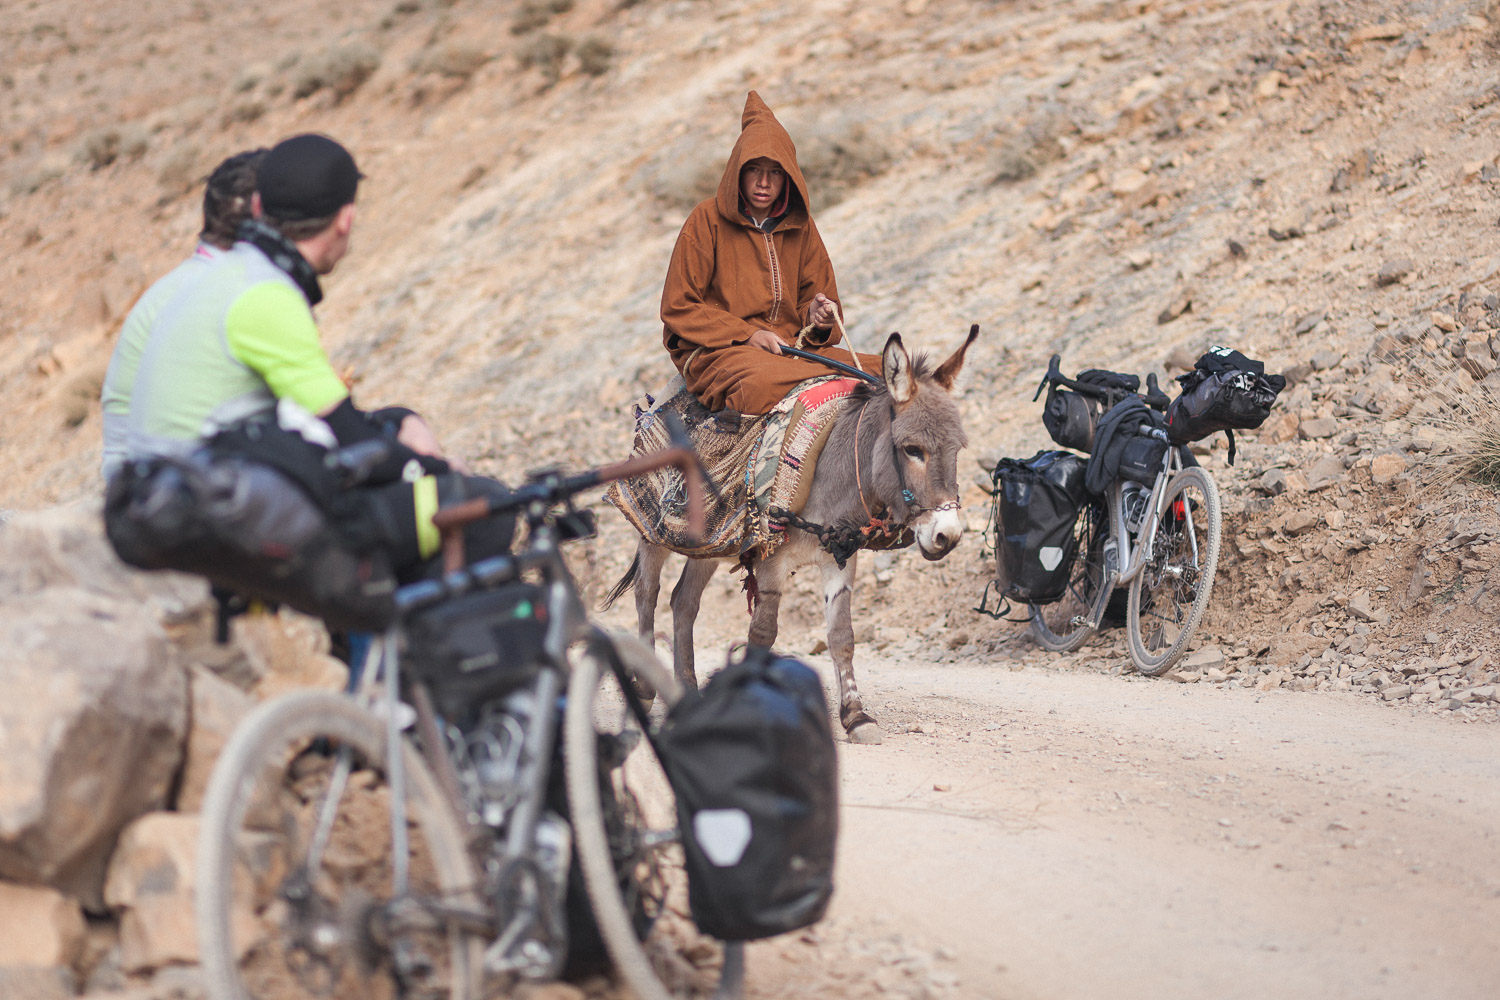 8bar bikes adventures morocco gravel 20151213 0141 bearbeitet - 8bar Adventures - Morocco - High Atlas - Part 2/2